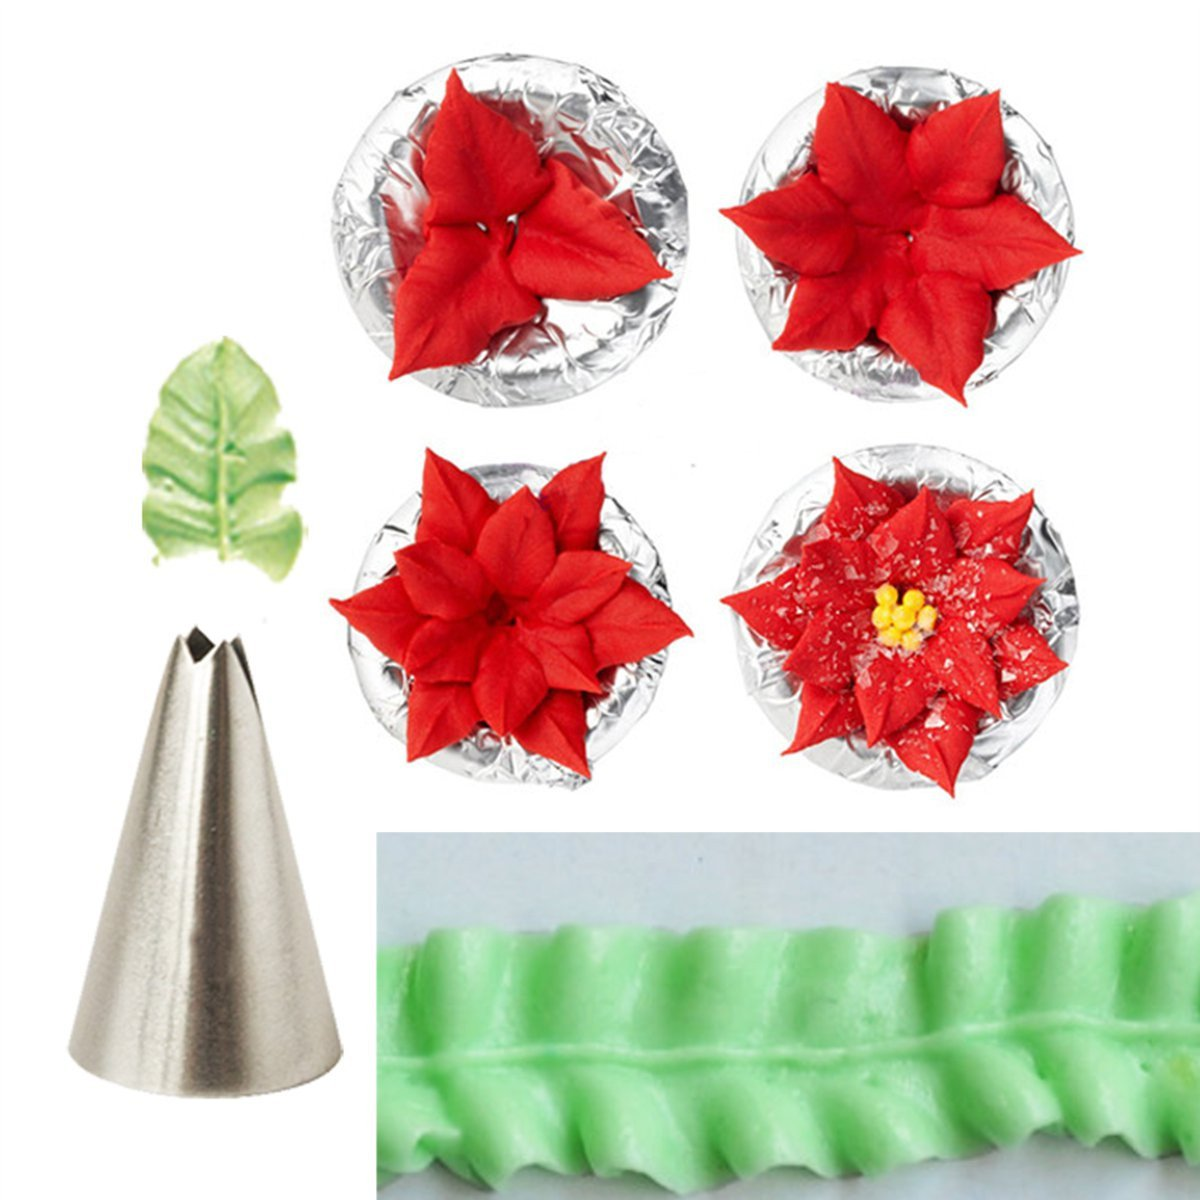 QOJA 7pcs leaf cup cake decor stainless steel icing piping nozzles